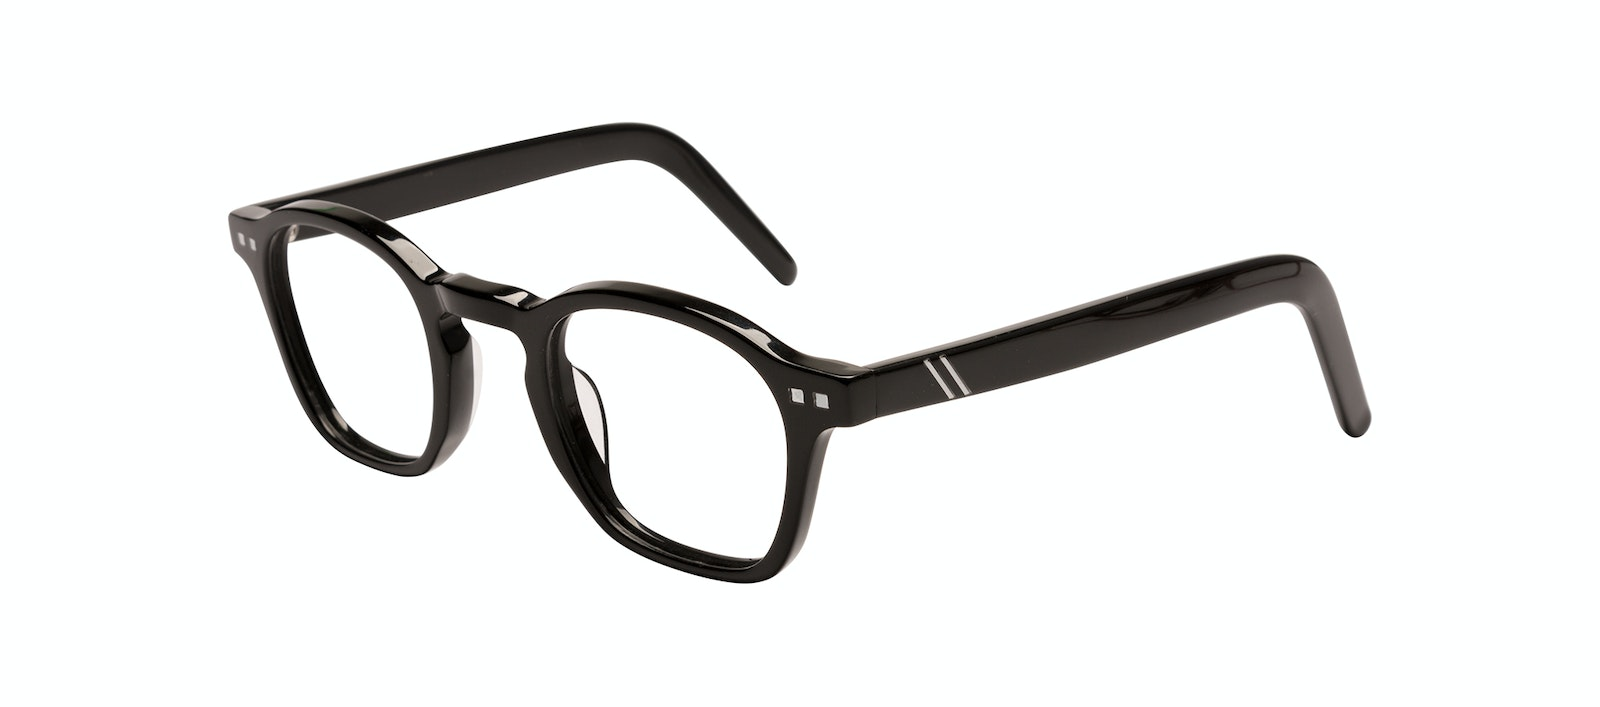 Affordable Fashion Glasses Square Eyeglasses Men Brisk Onyx Tilt